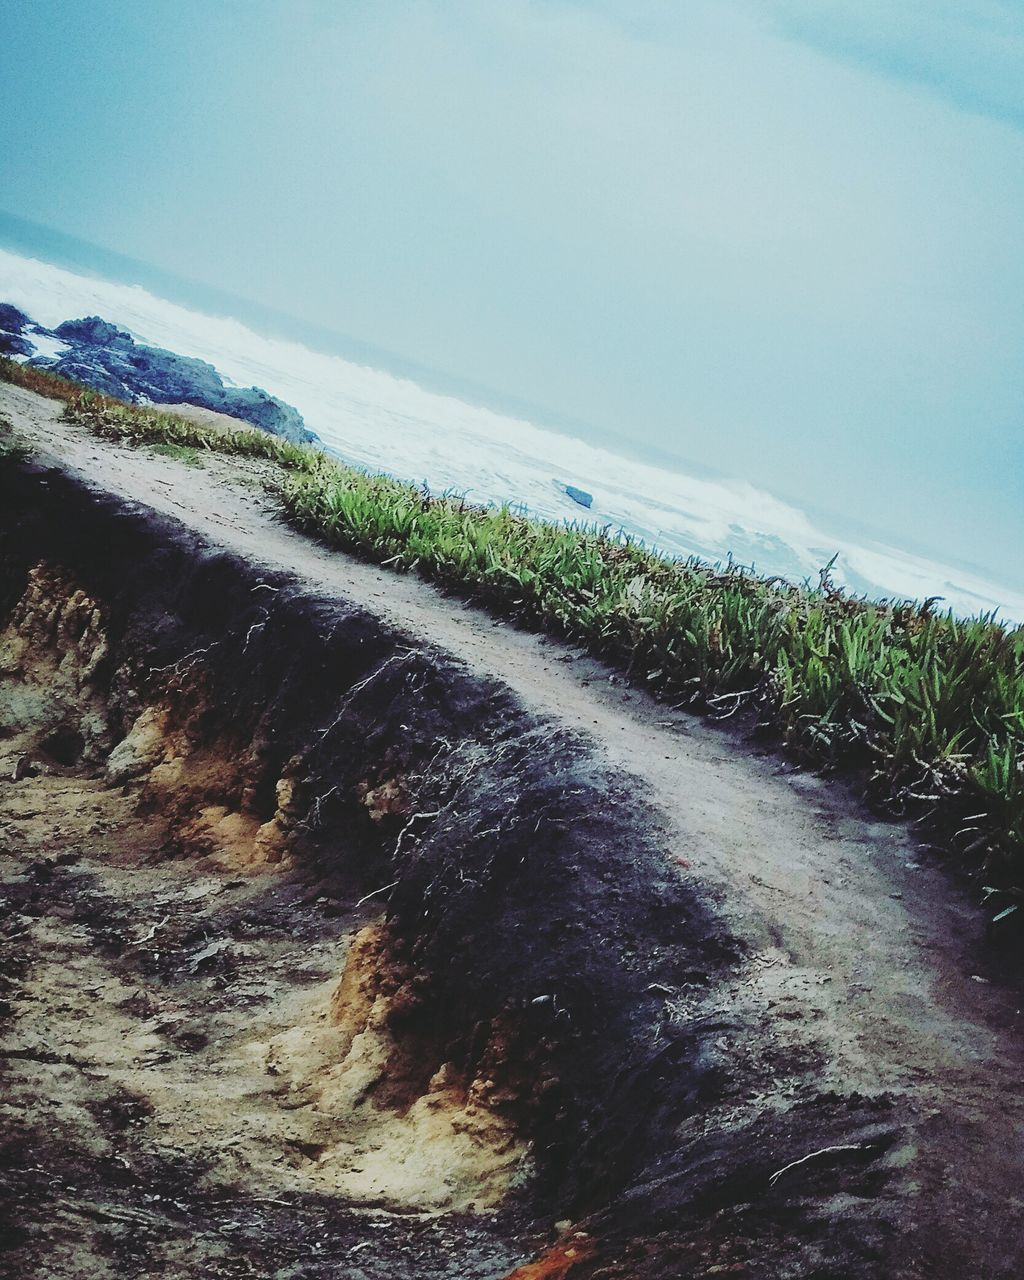 tranquil scene, nature, tranquility, scenics, beauty in nature, sea, water, no people, day, outdoors, beach, landscape, sky, grass, horizon over water, wave, sand, growth